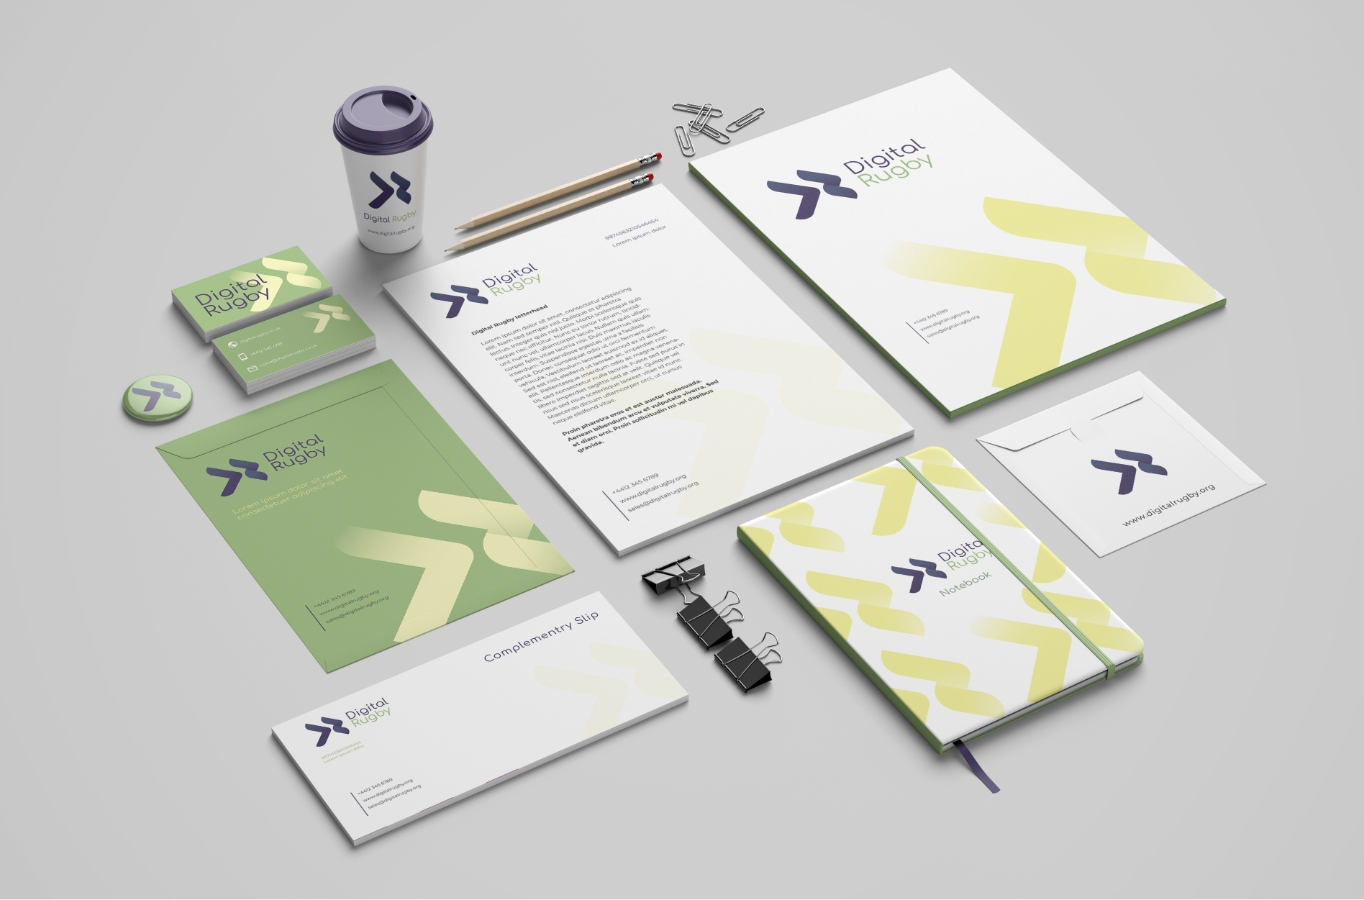 digital rugby stationery pack. digital rugby